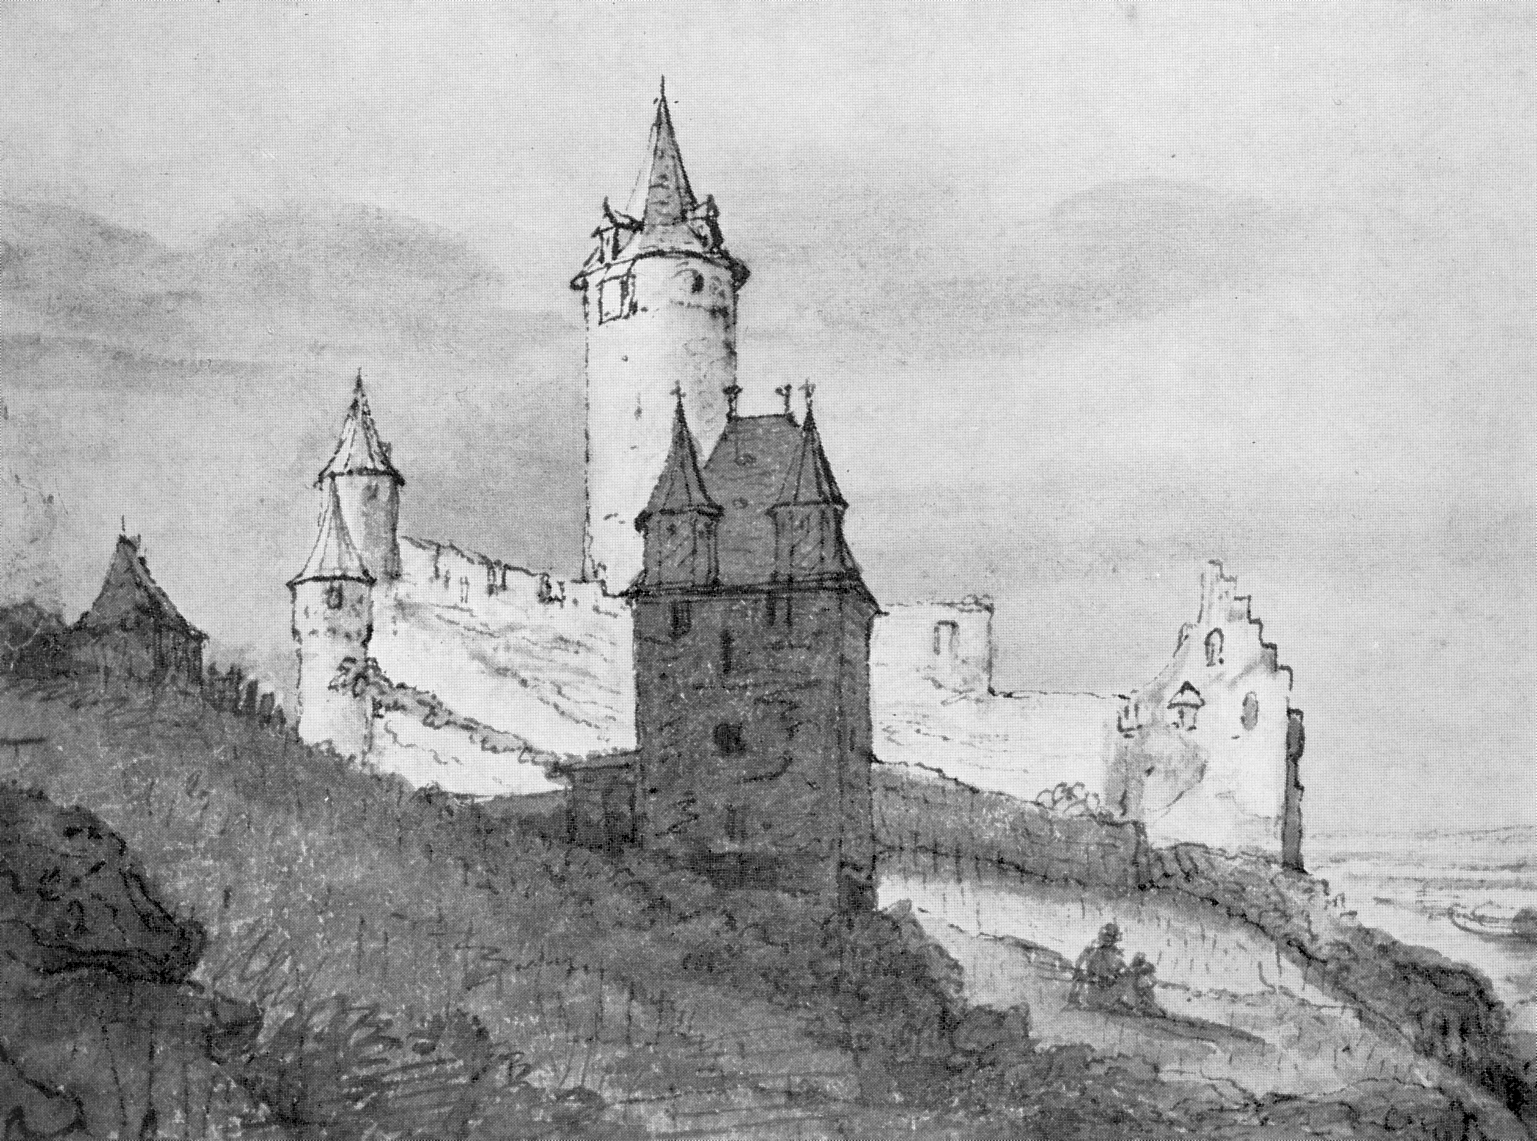 Tall Castle Drawing Stahleck Castle in 1663